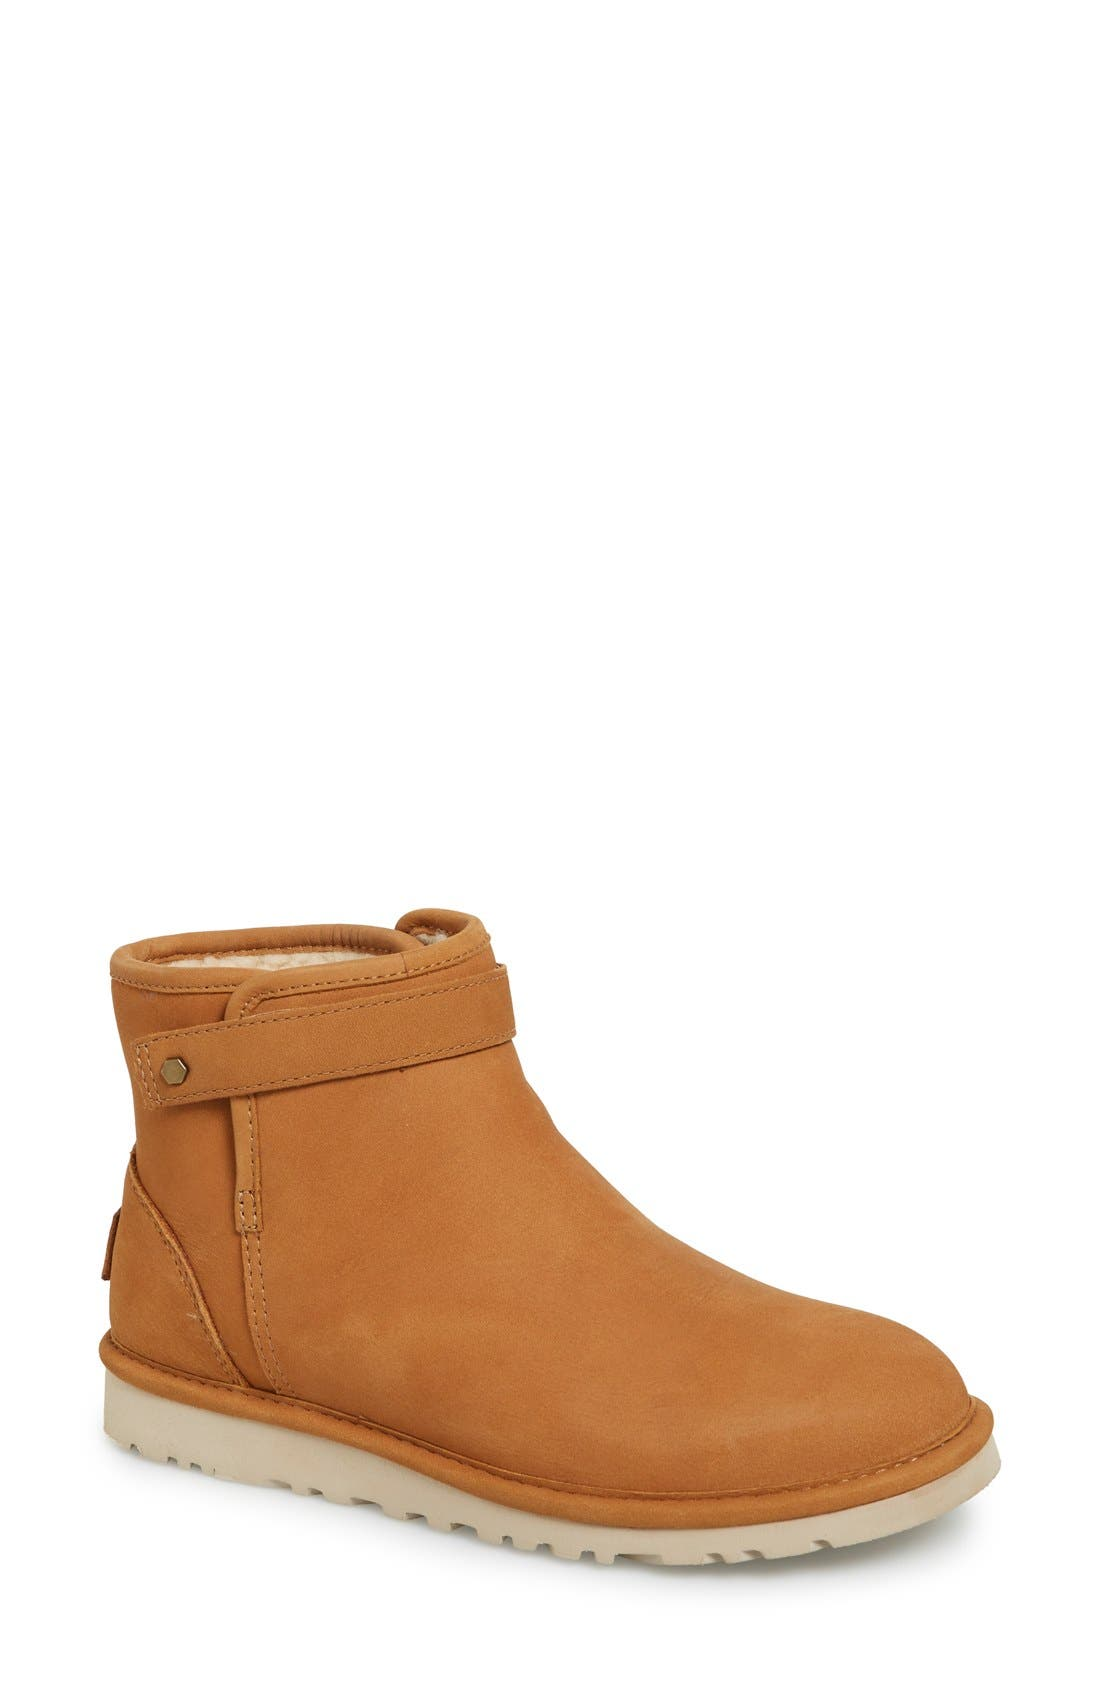 Alternate Image 1 Selected - UGG® 'Rella' Leather Ankle Boot (Women)